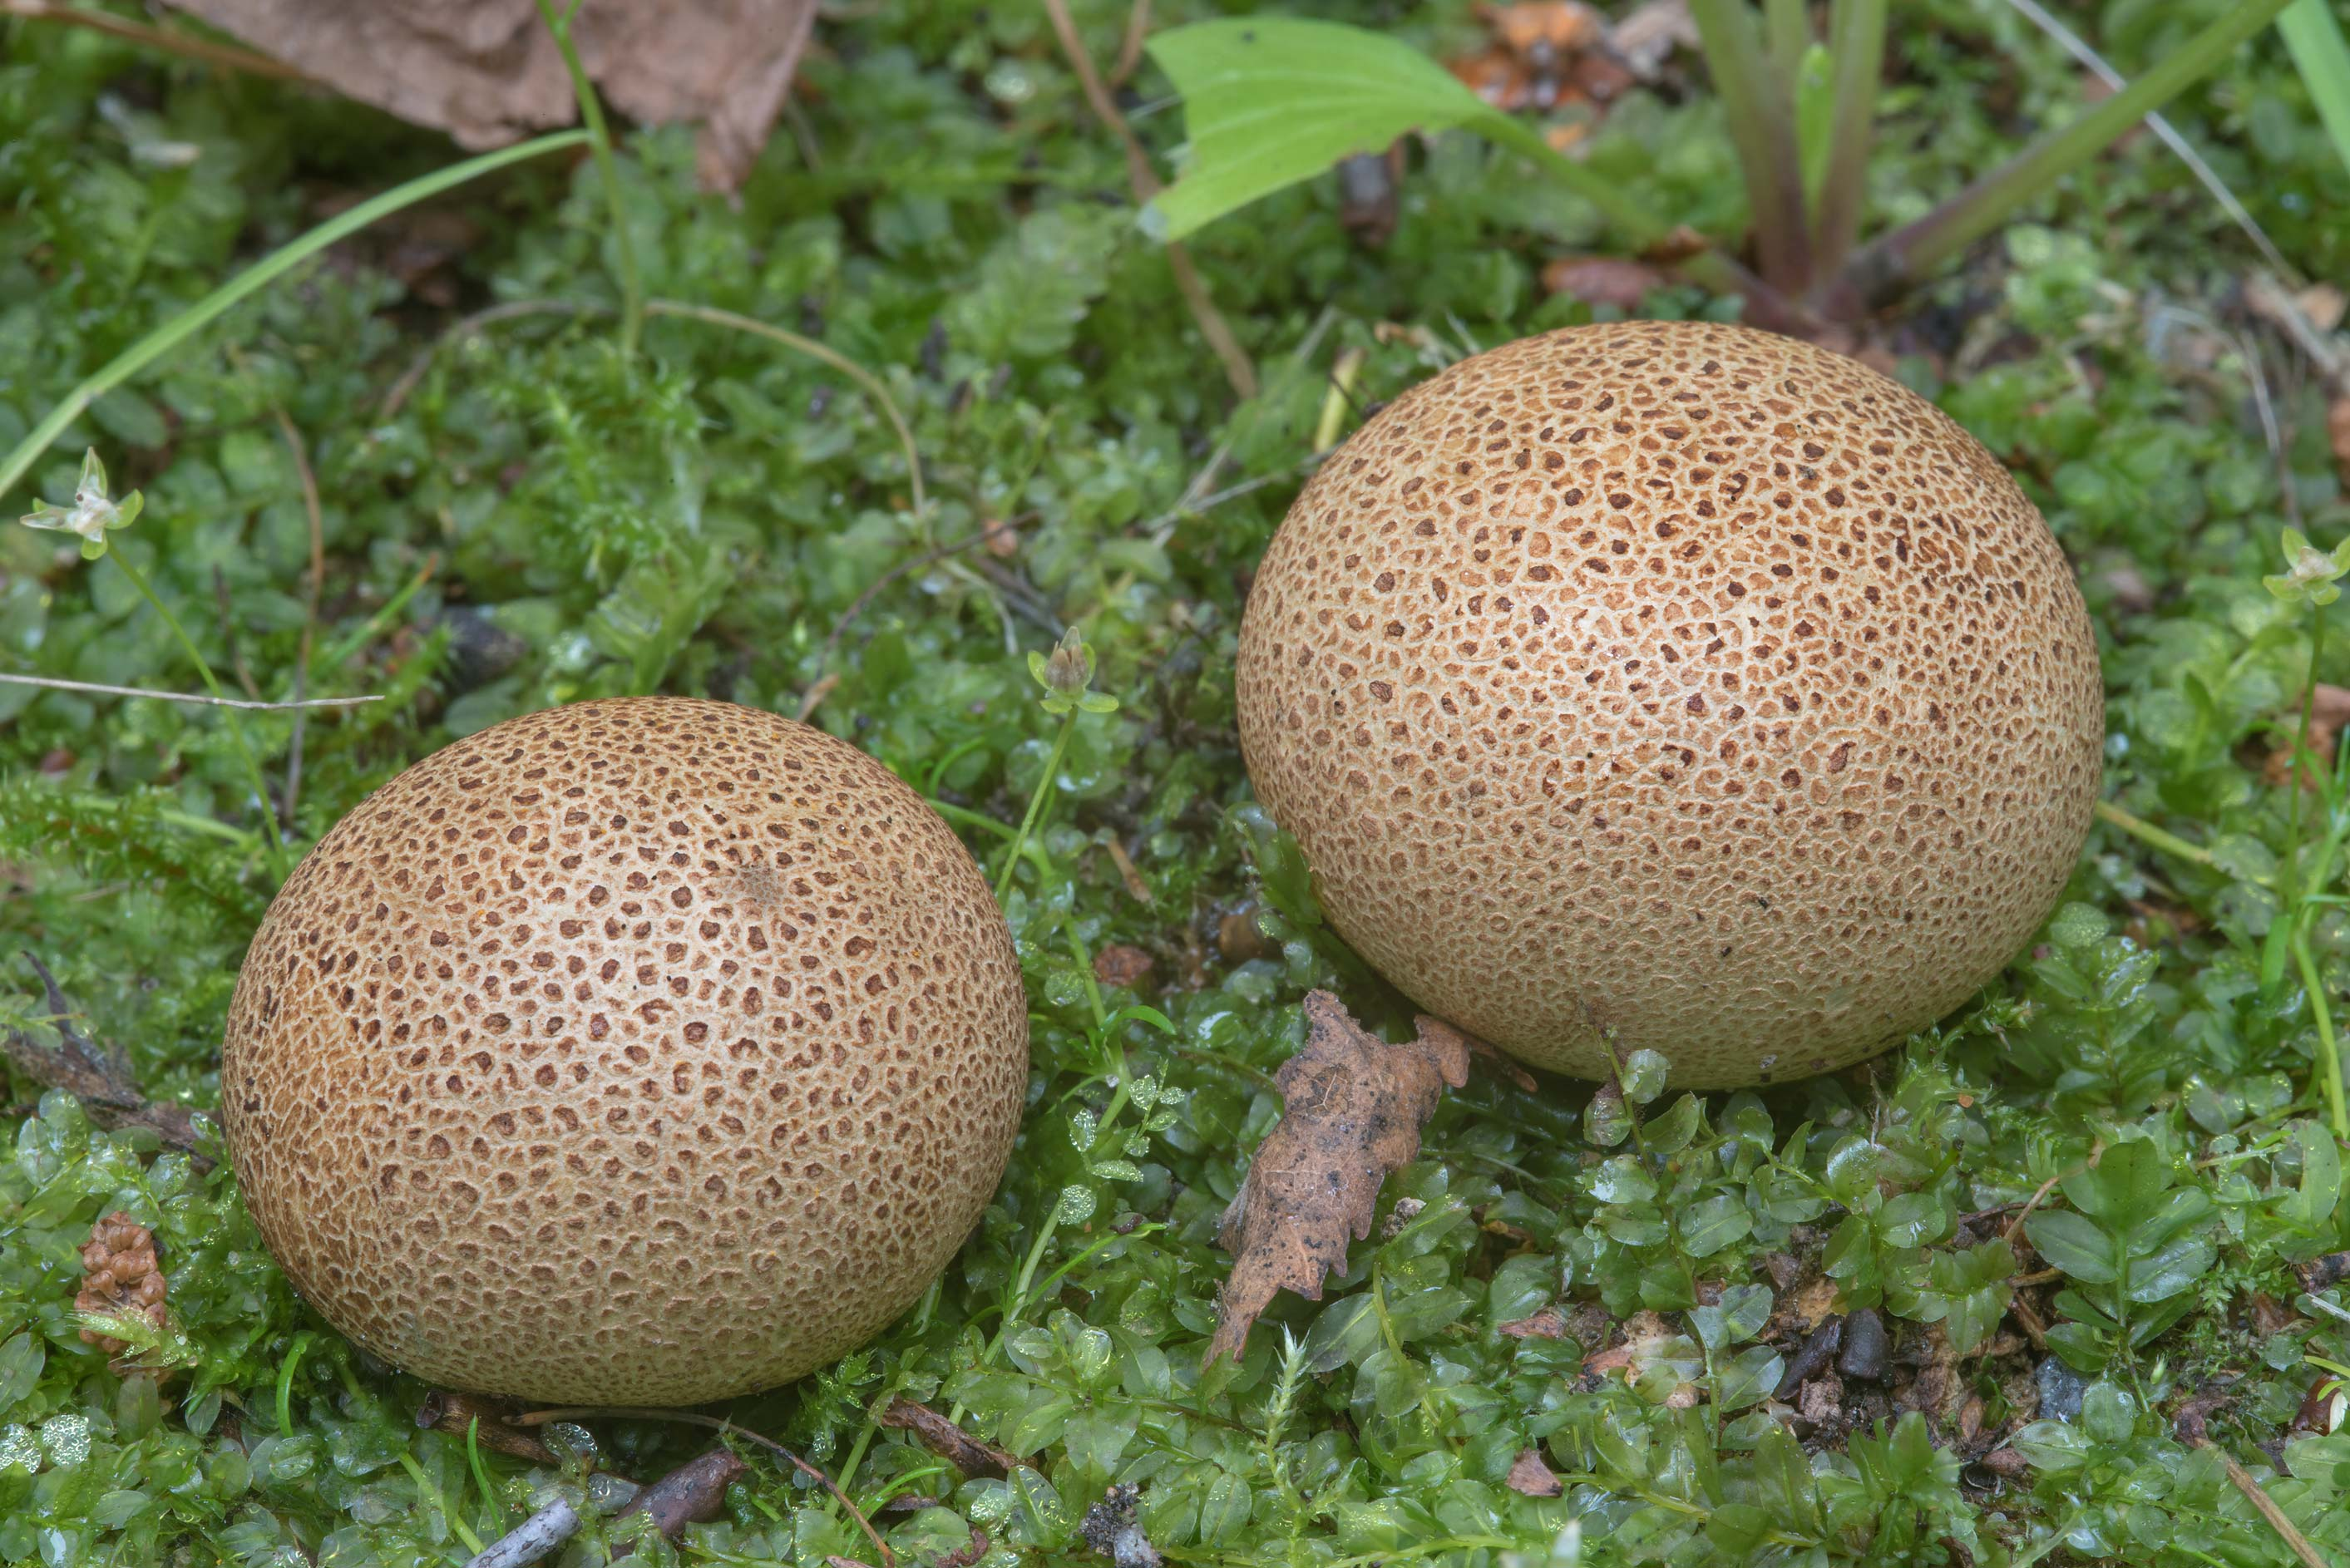 Earth ball mushrooms Scleroderma areolatum in a...University). St.Petersburg, Russia